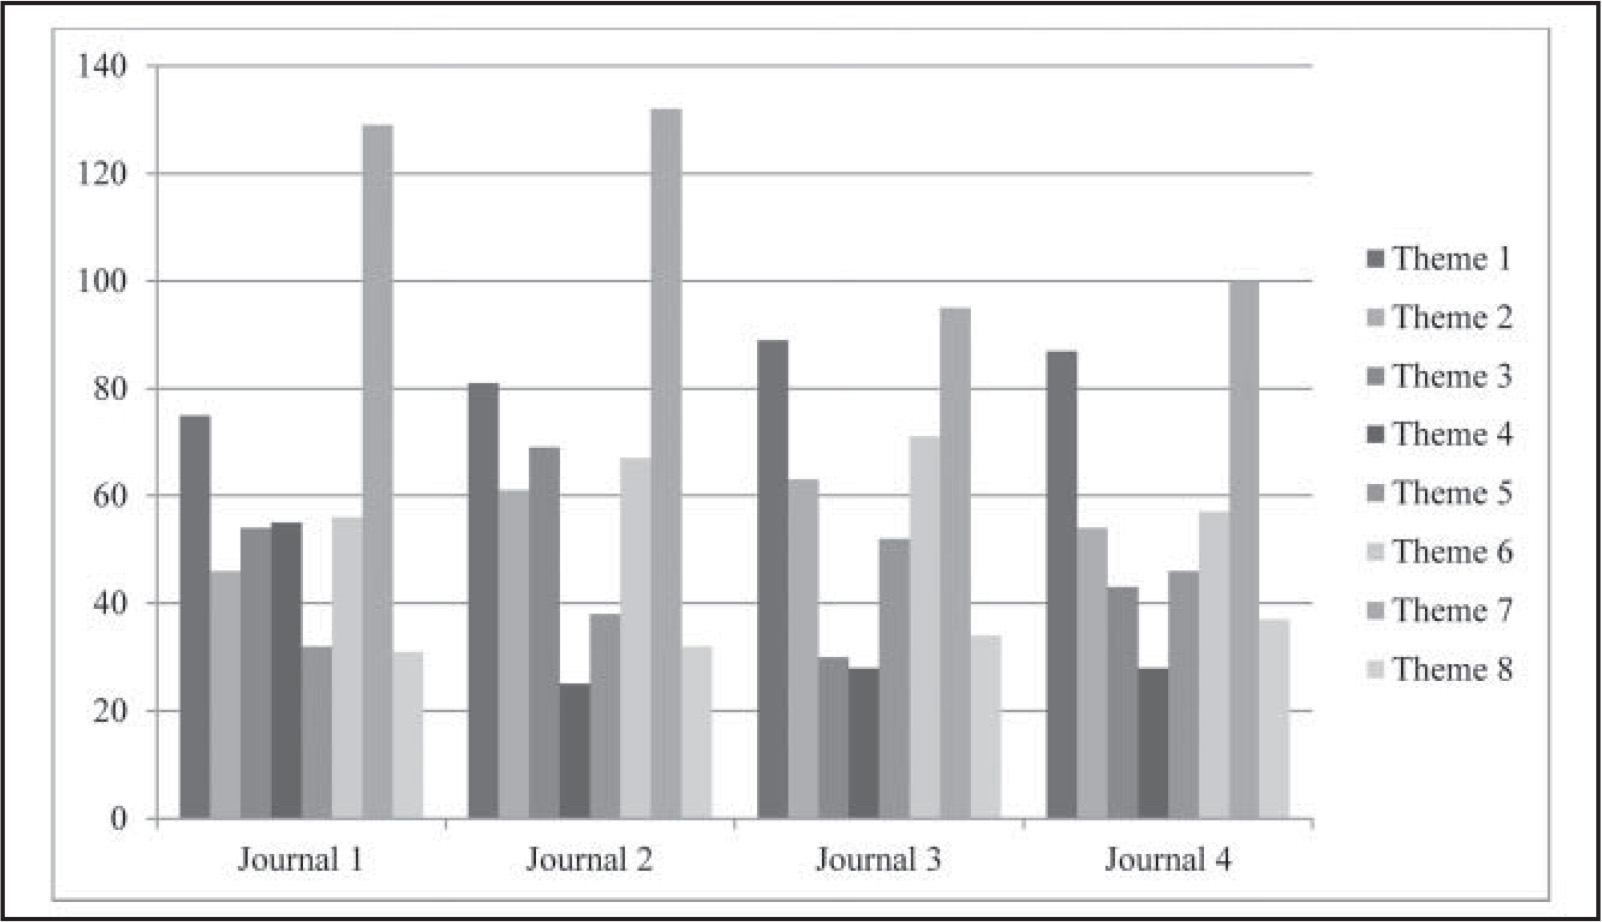 Number of comments founds in each journal for each theme.